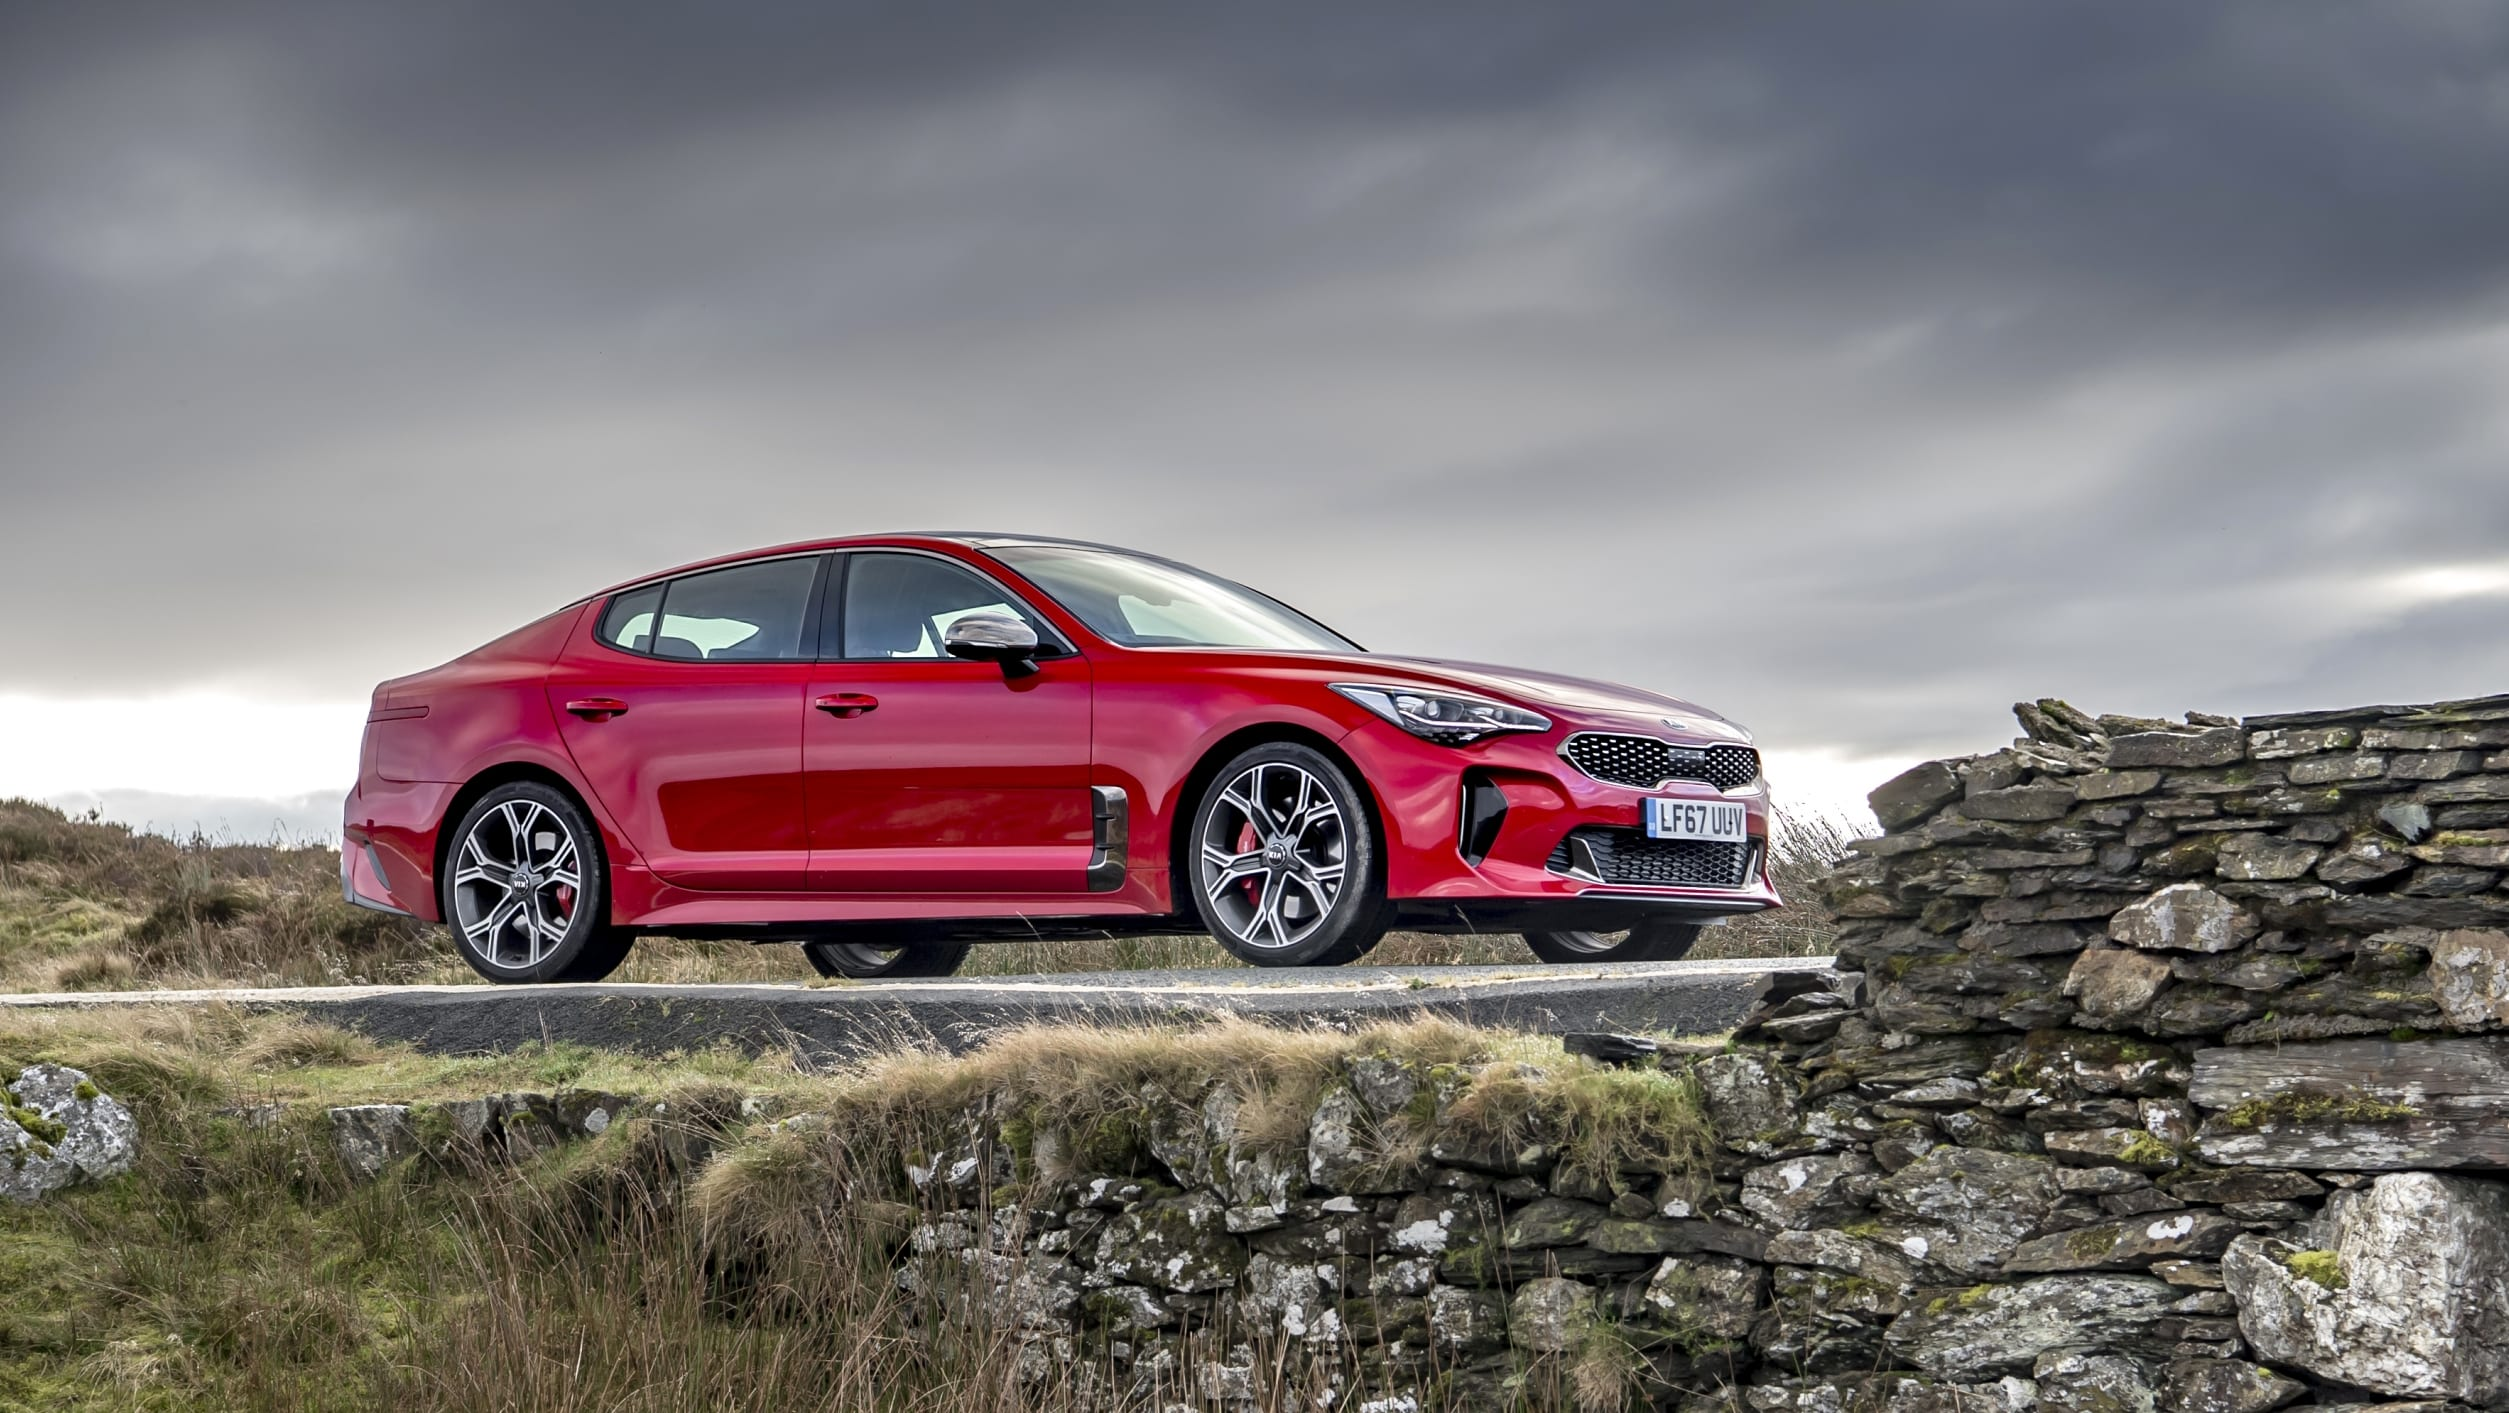 kia stinger leasing offer vantage contract hire leasing. Black Bedroom Furniture Sets. Home Design Ideas